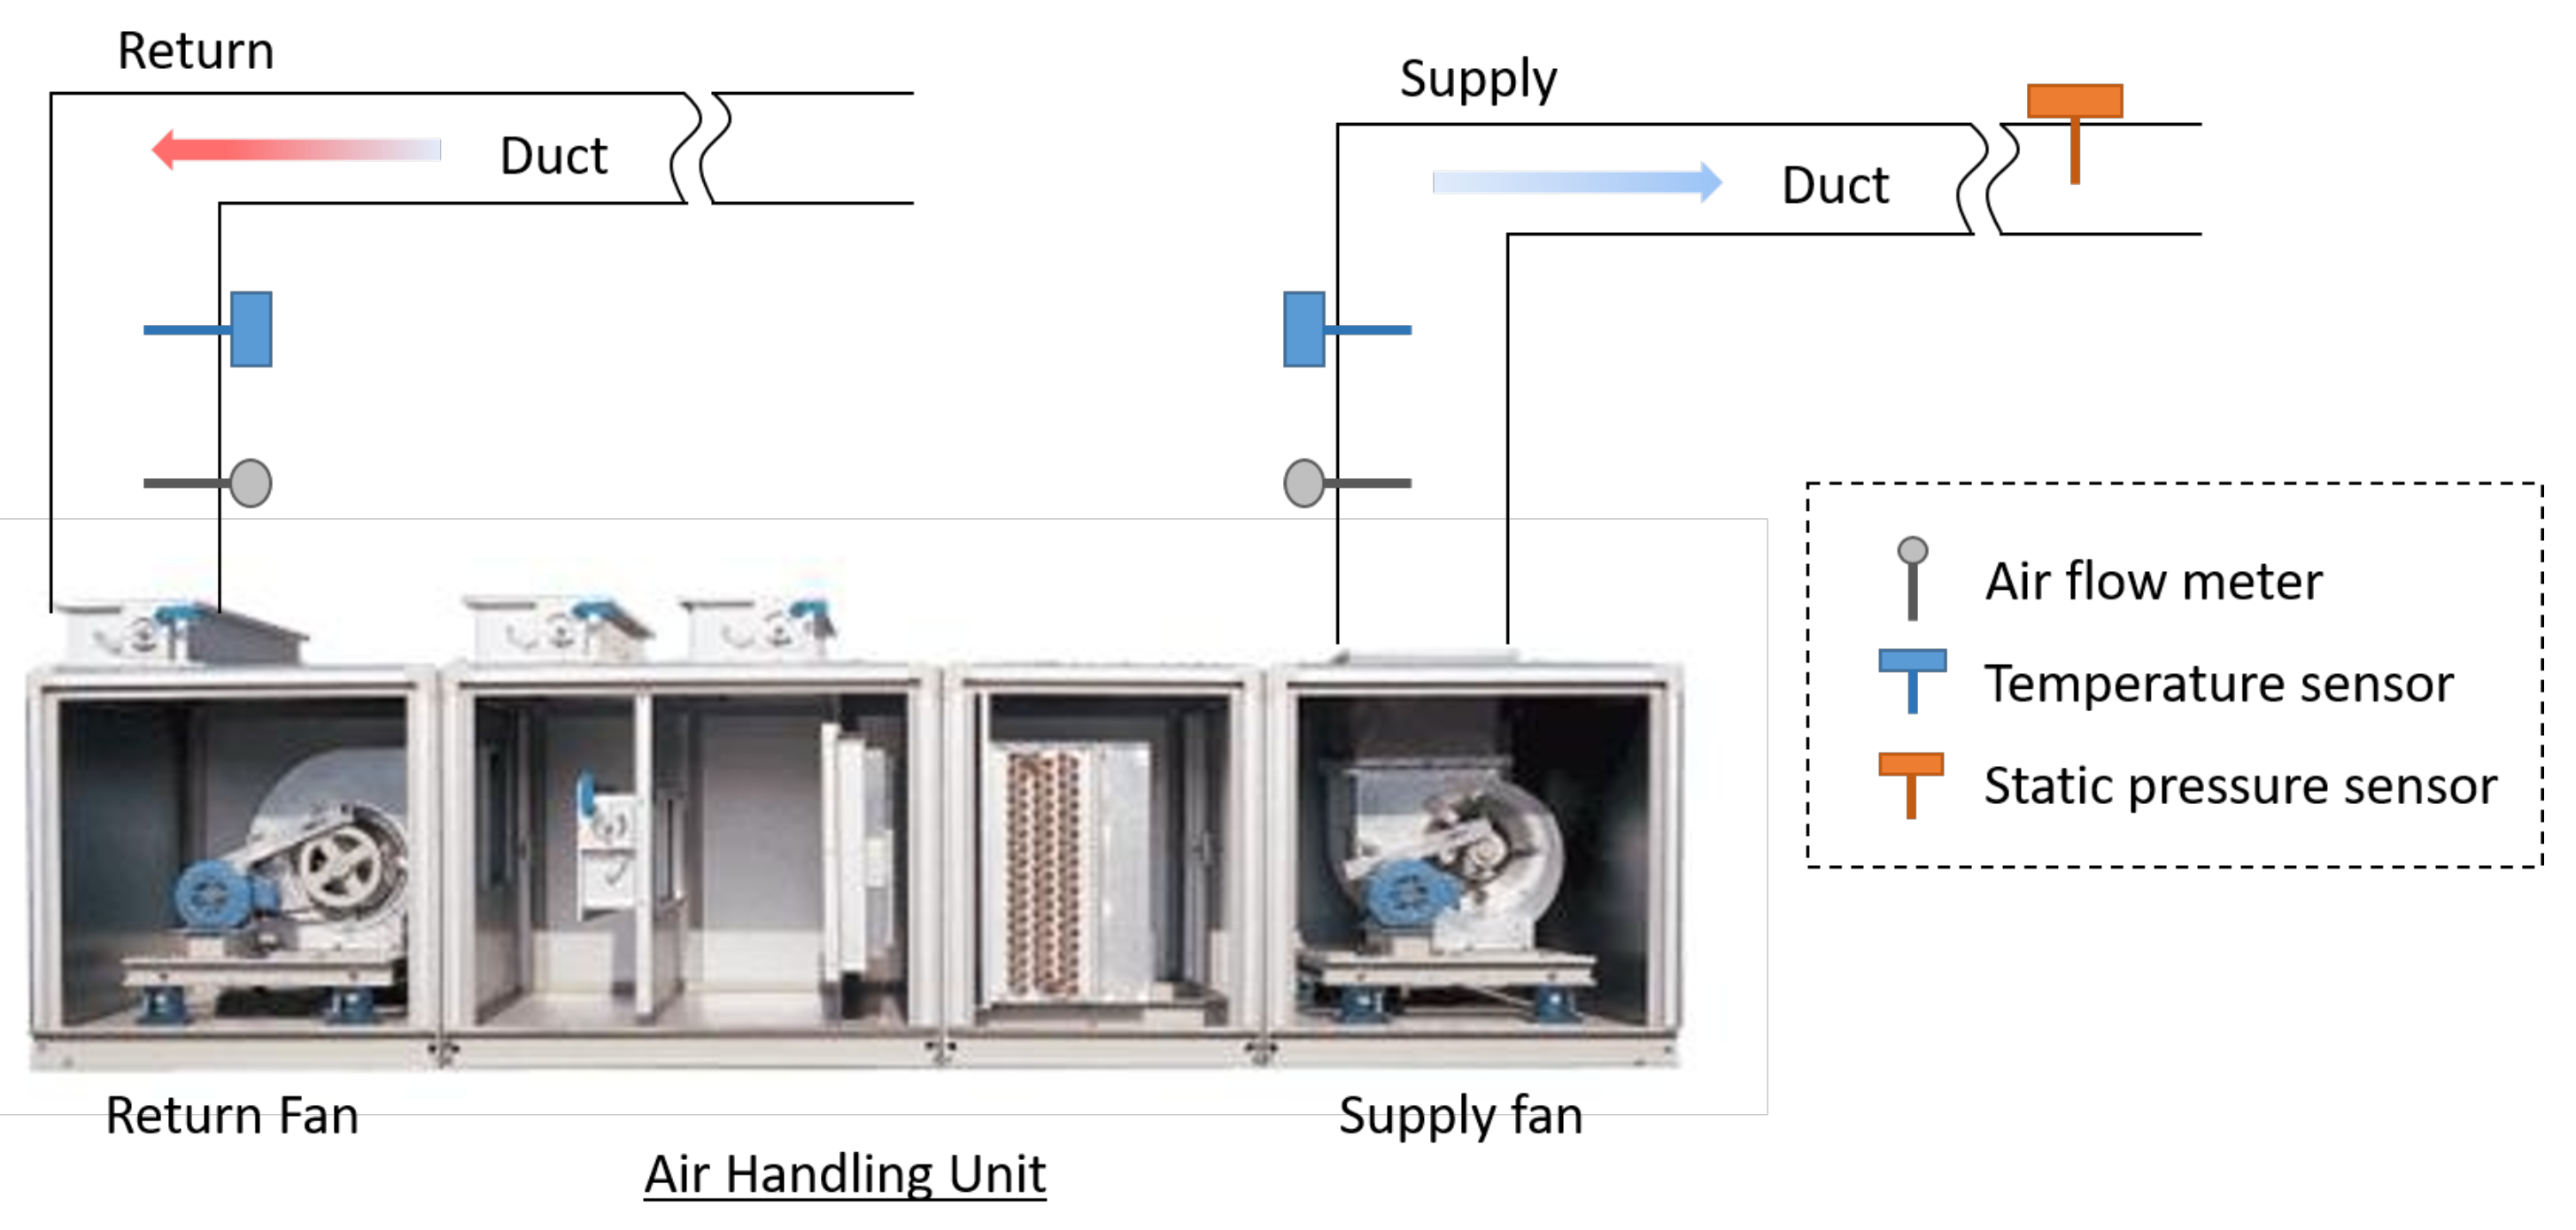 Applied Sciences Free Full Text Sensorless Air Flow Control In An Hvac System Through Deep Learning Html